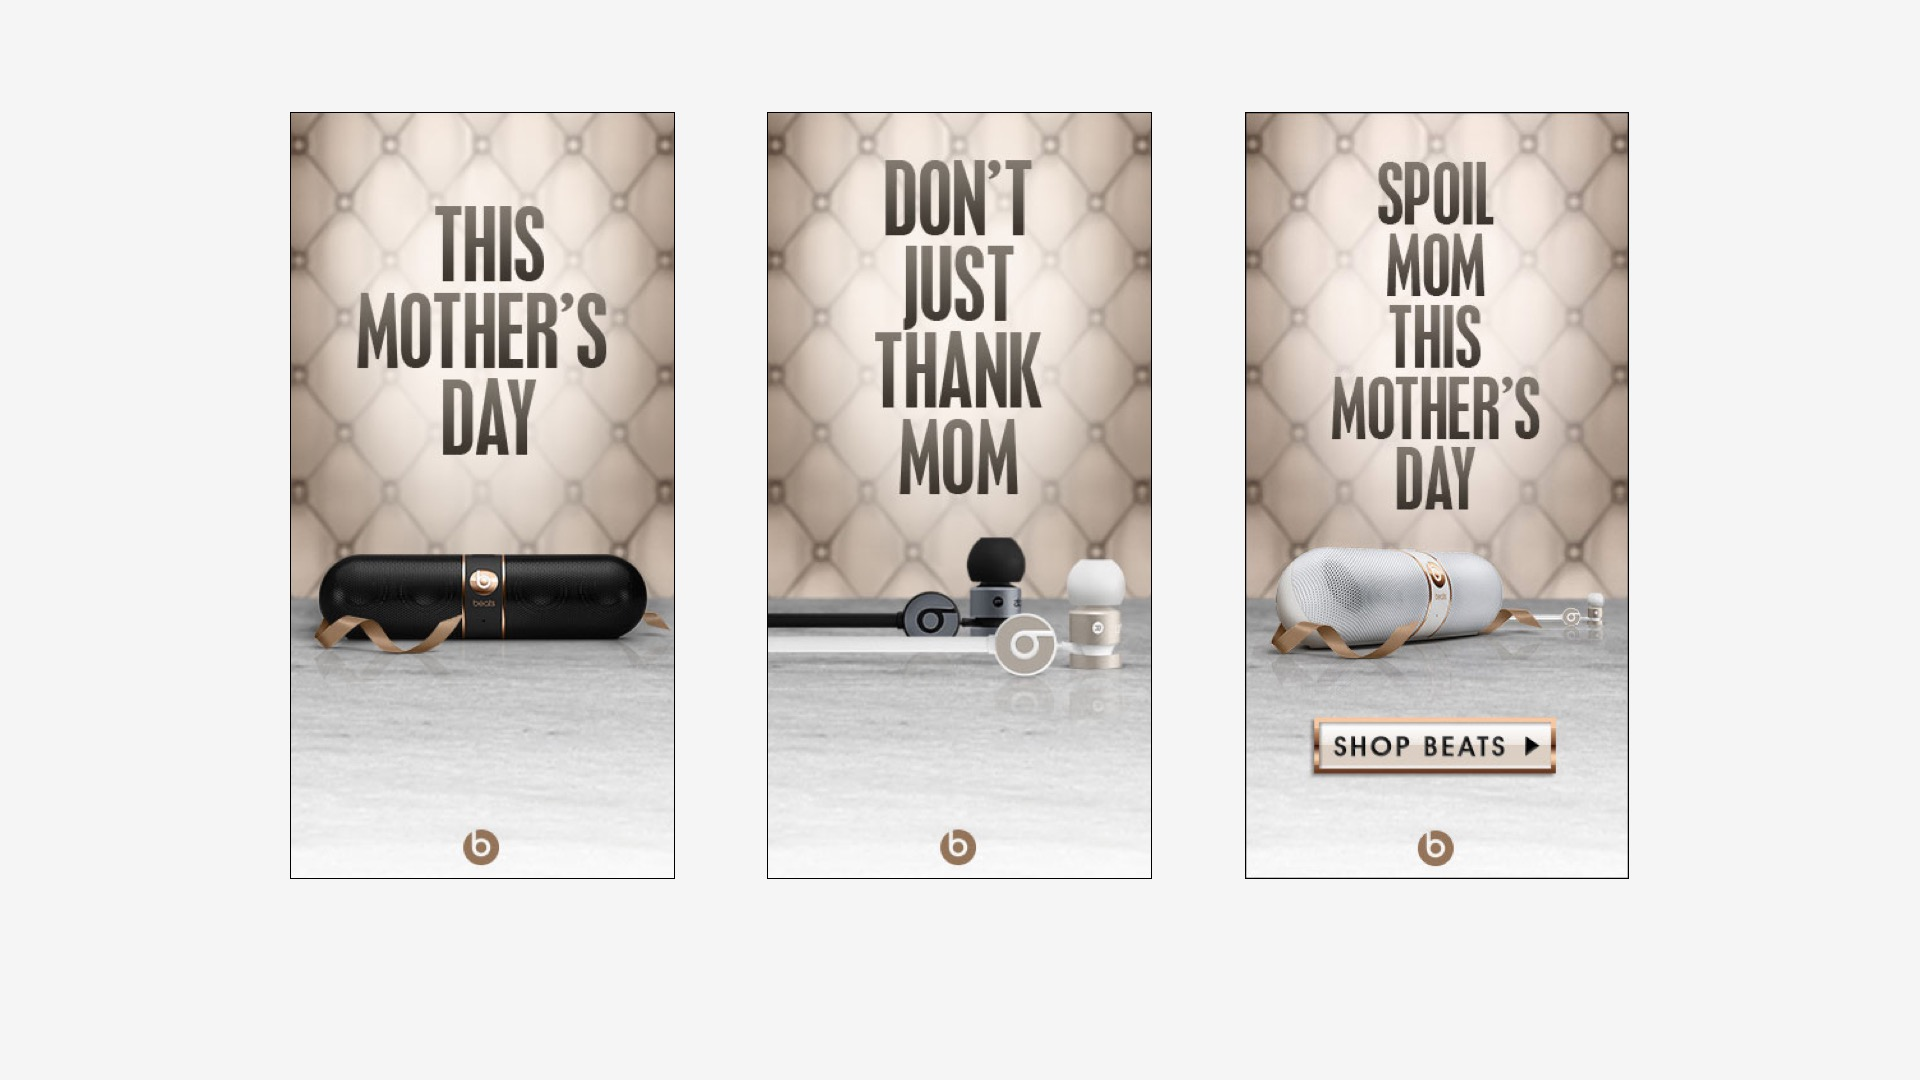 Beats Electronics: Mother's Day Campaign